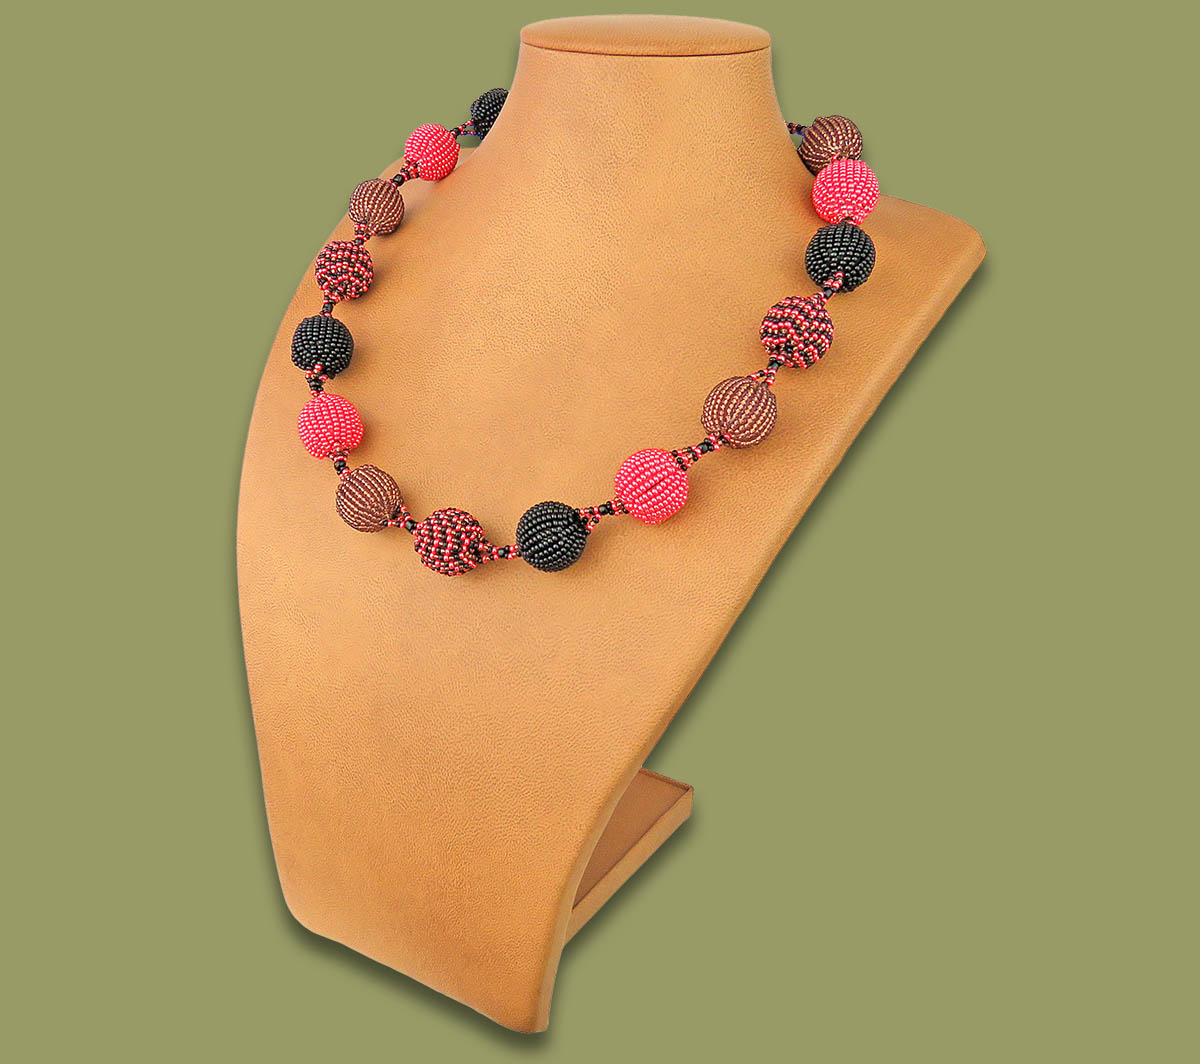 Beaded Bobble Necklace Pink Copper Black